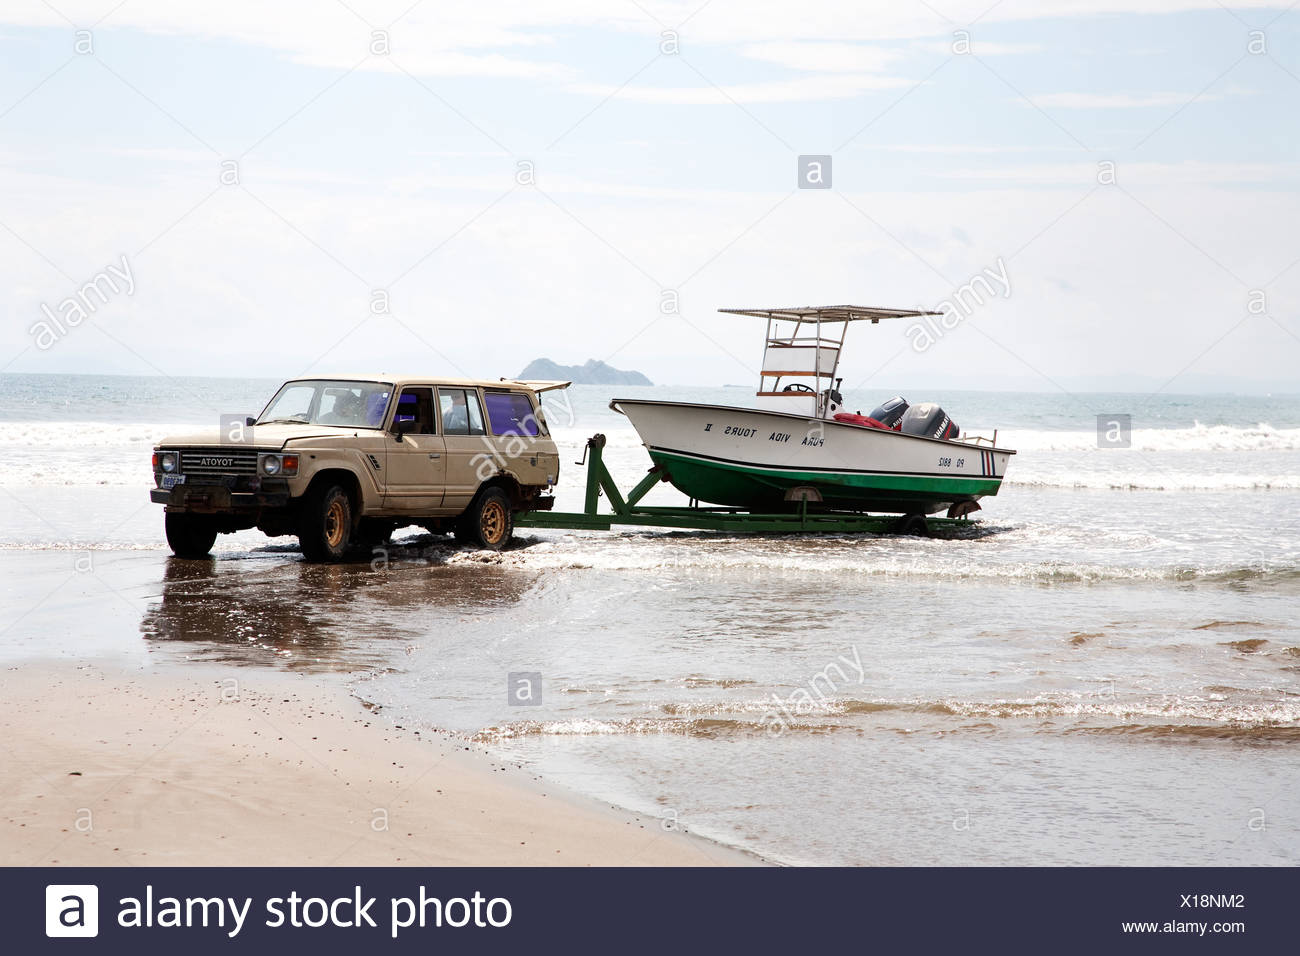 Car tugging boat out of water - Stock Image